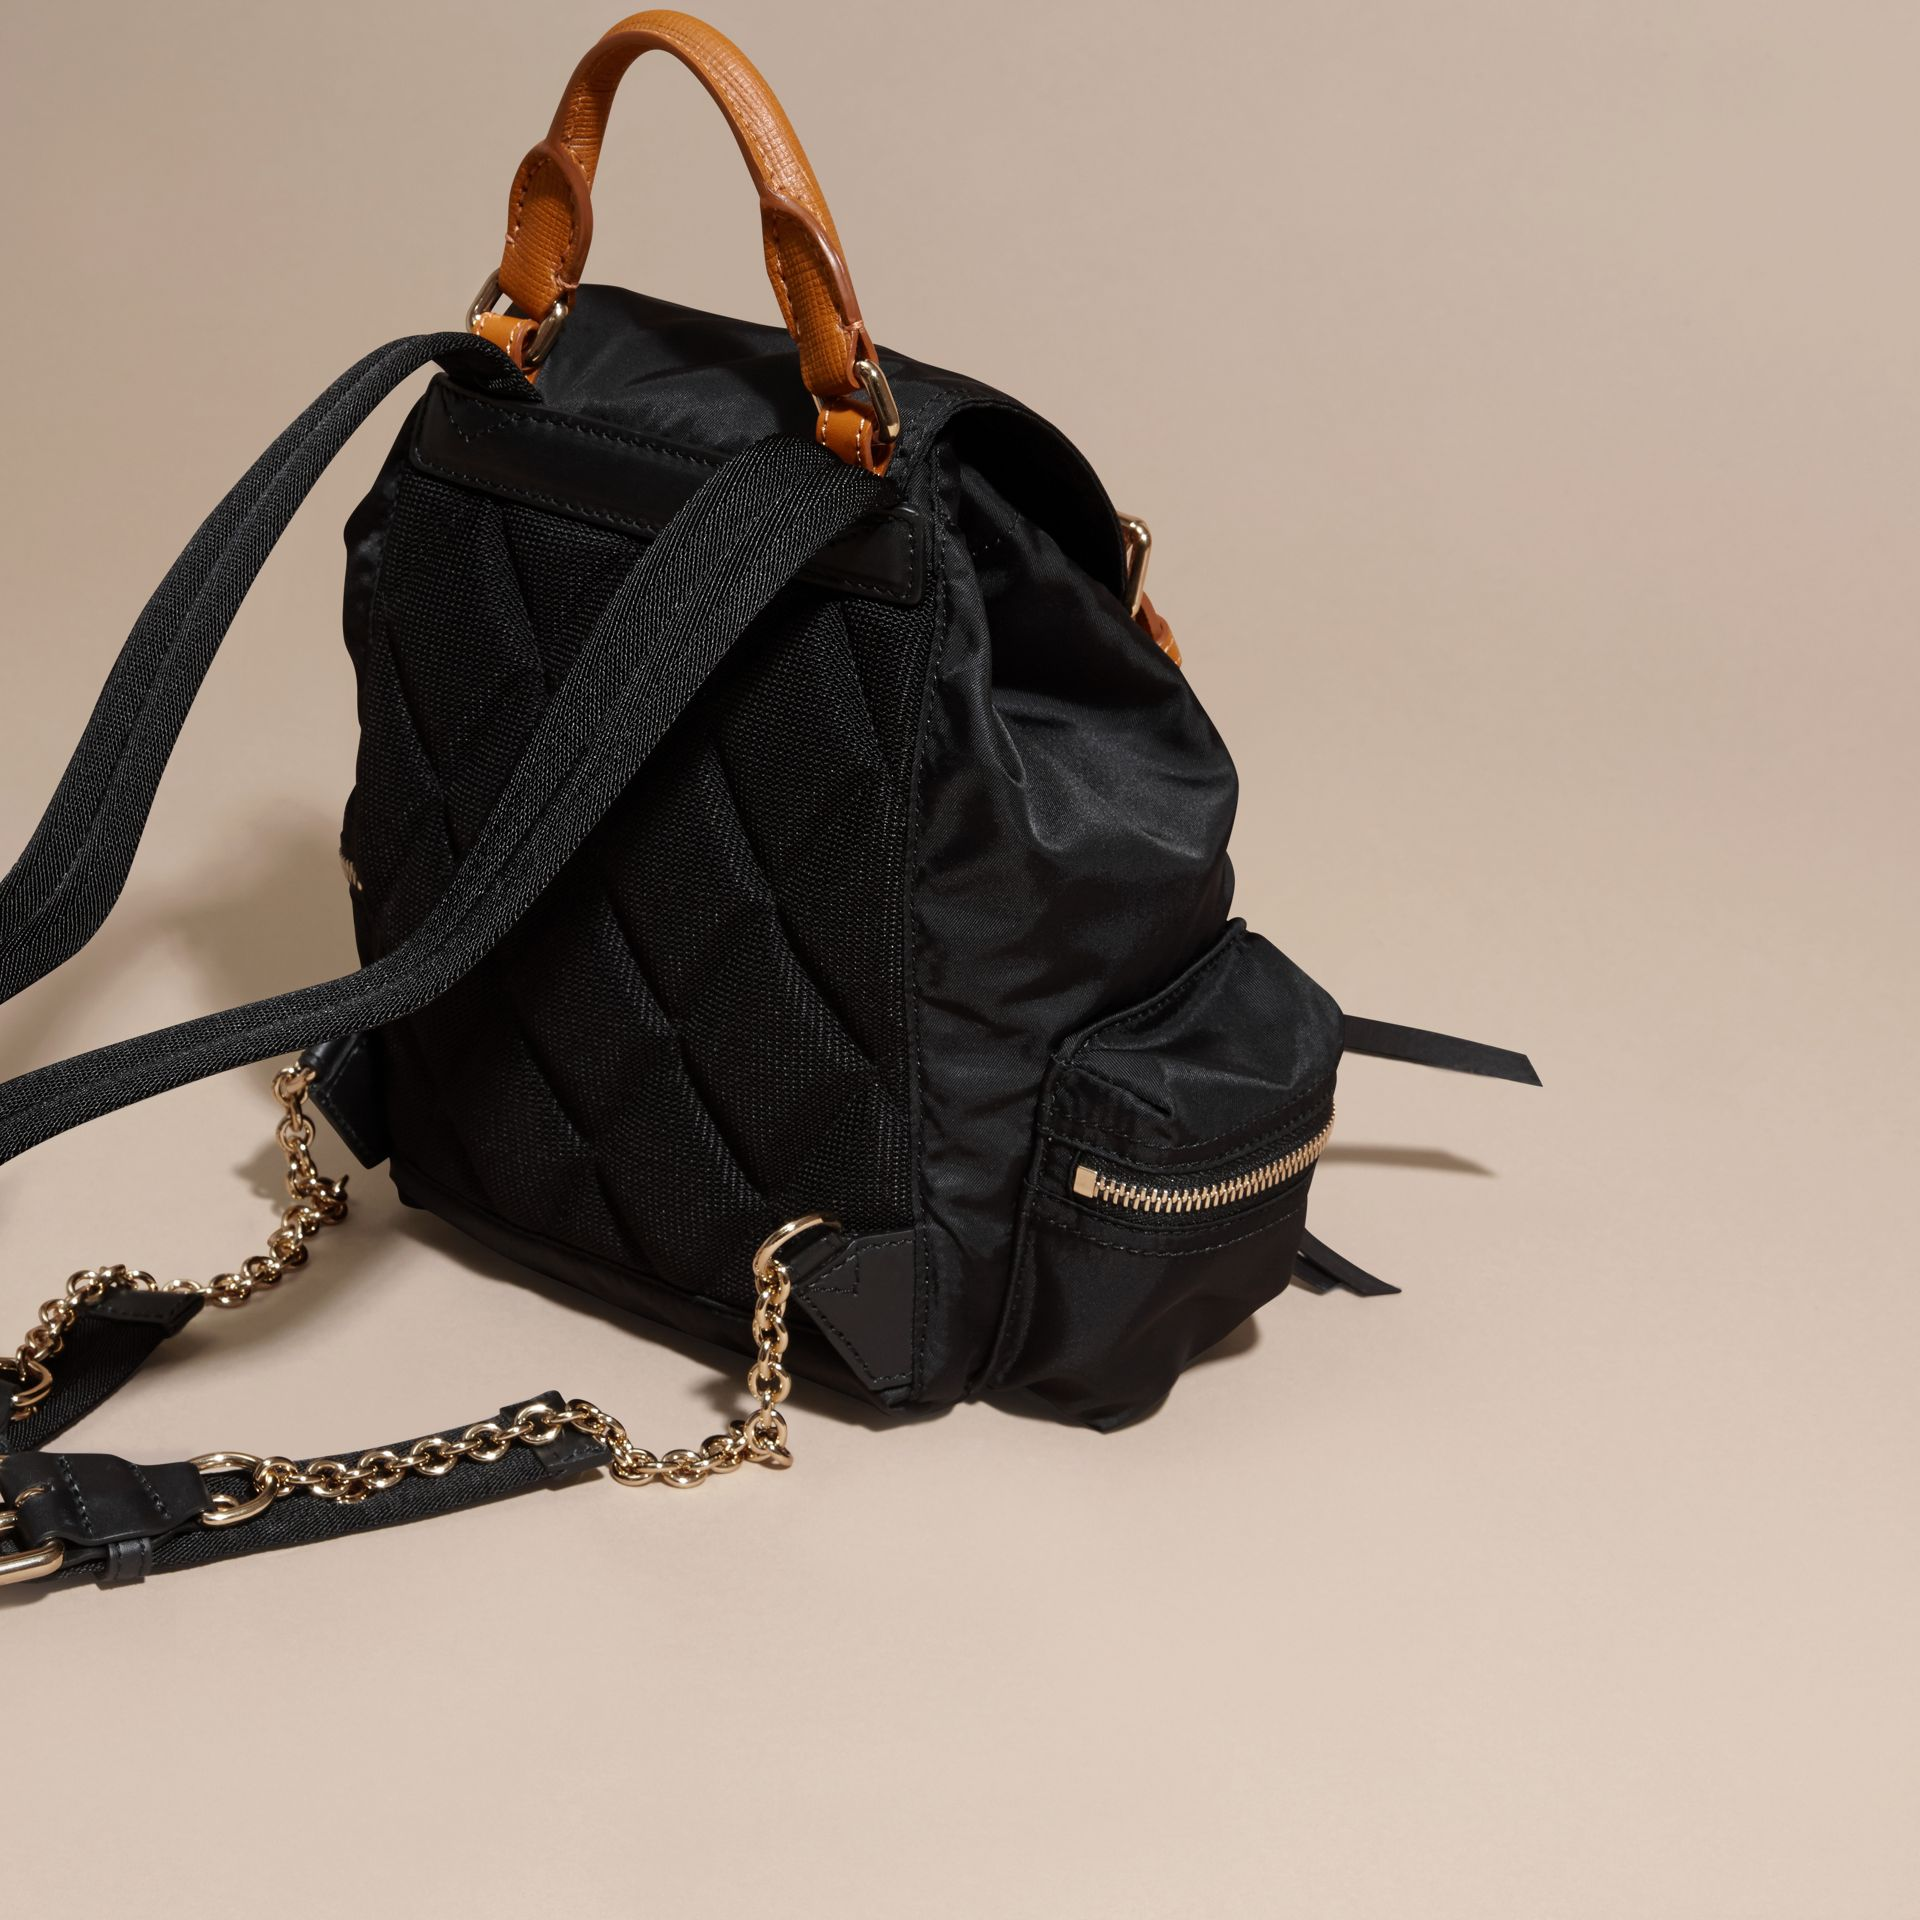 Noir Petit sac The Rucksack en nylon technique et cuir Noir - photo de la galerie 4